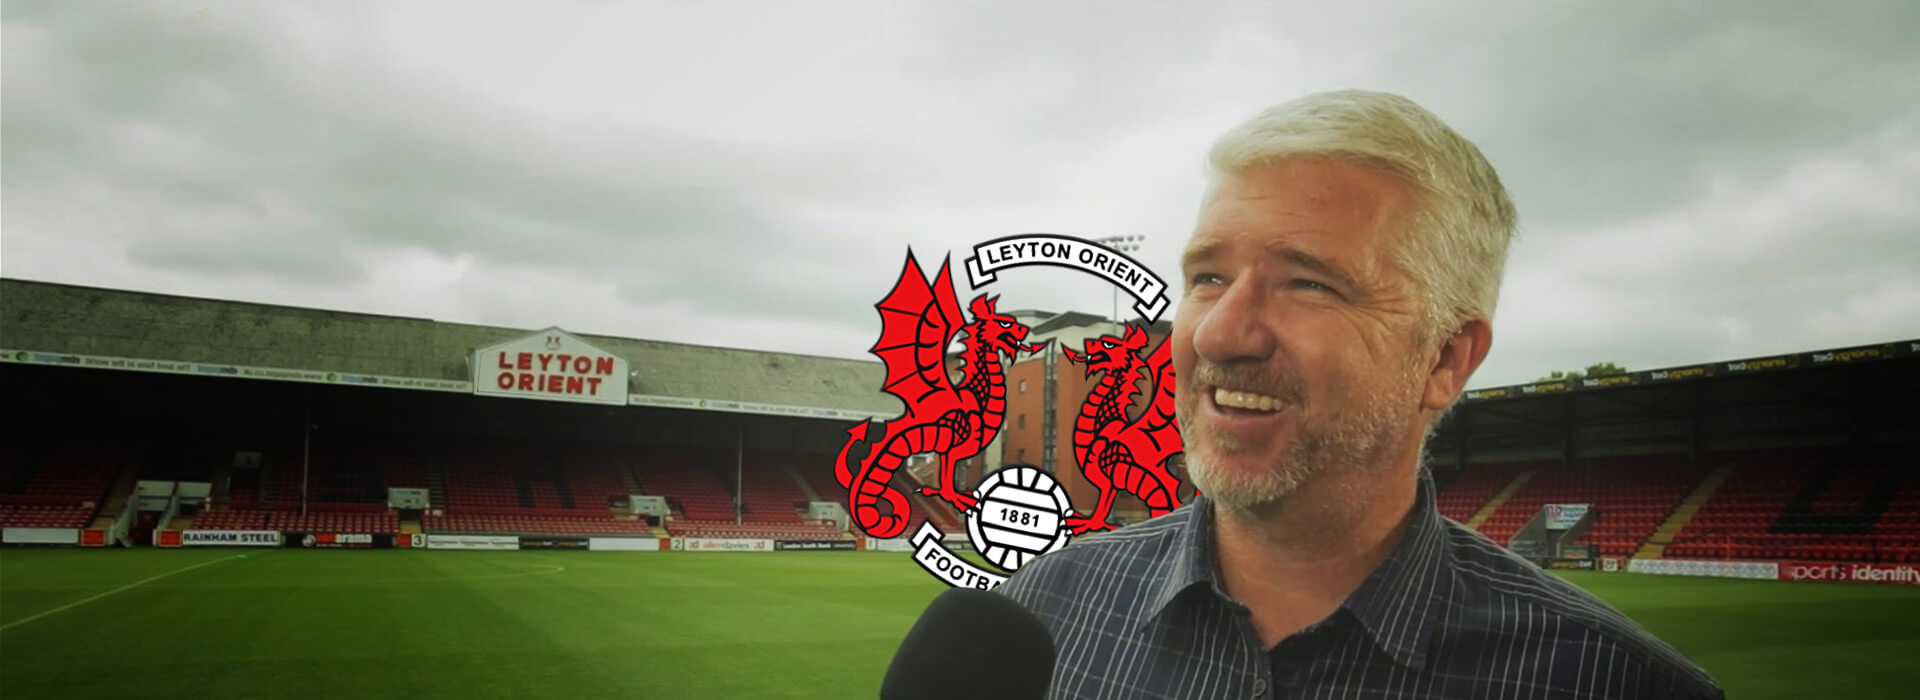 A Confident Ling Returns to Leyton Orient [video]